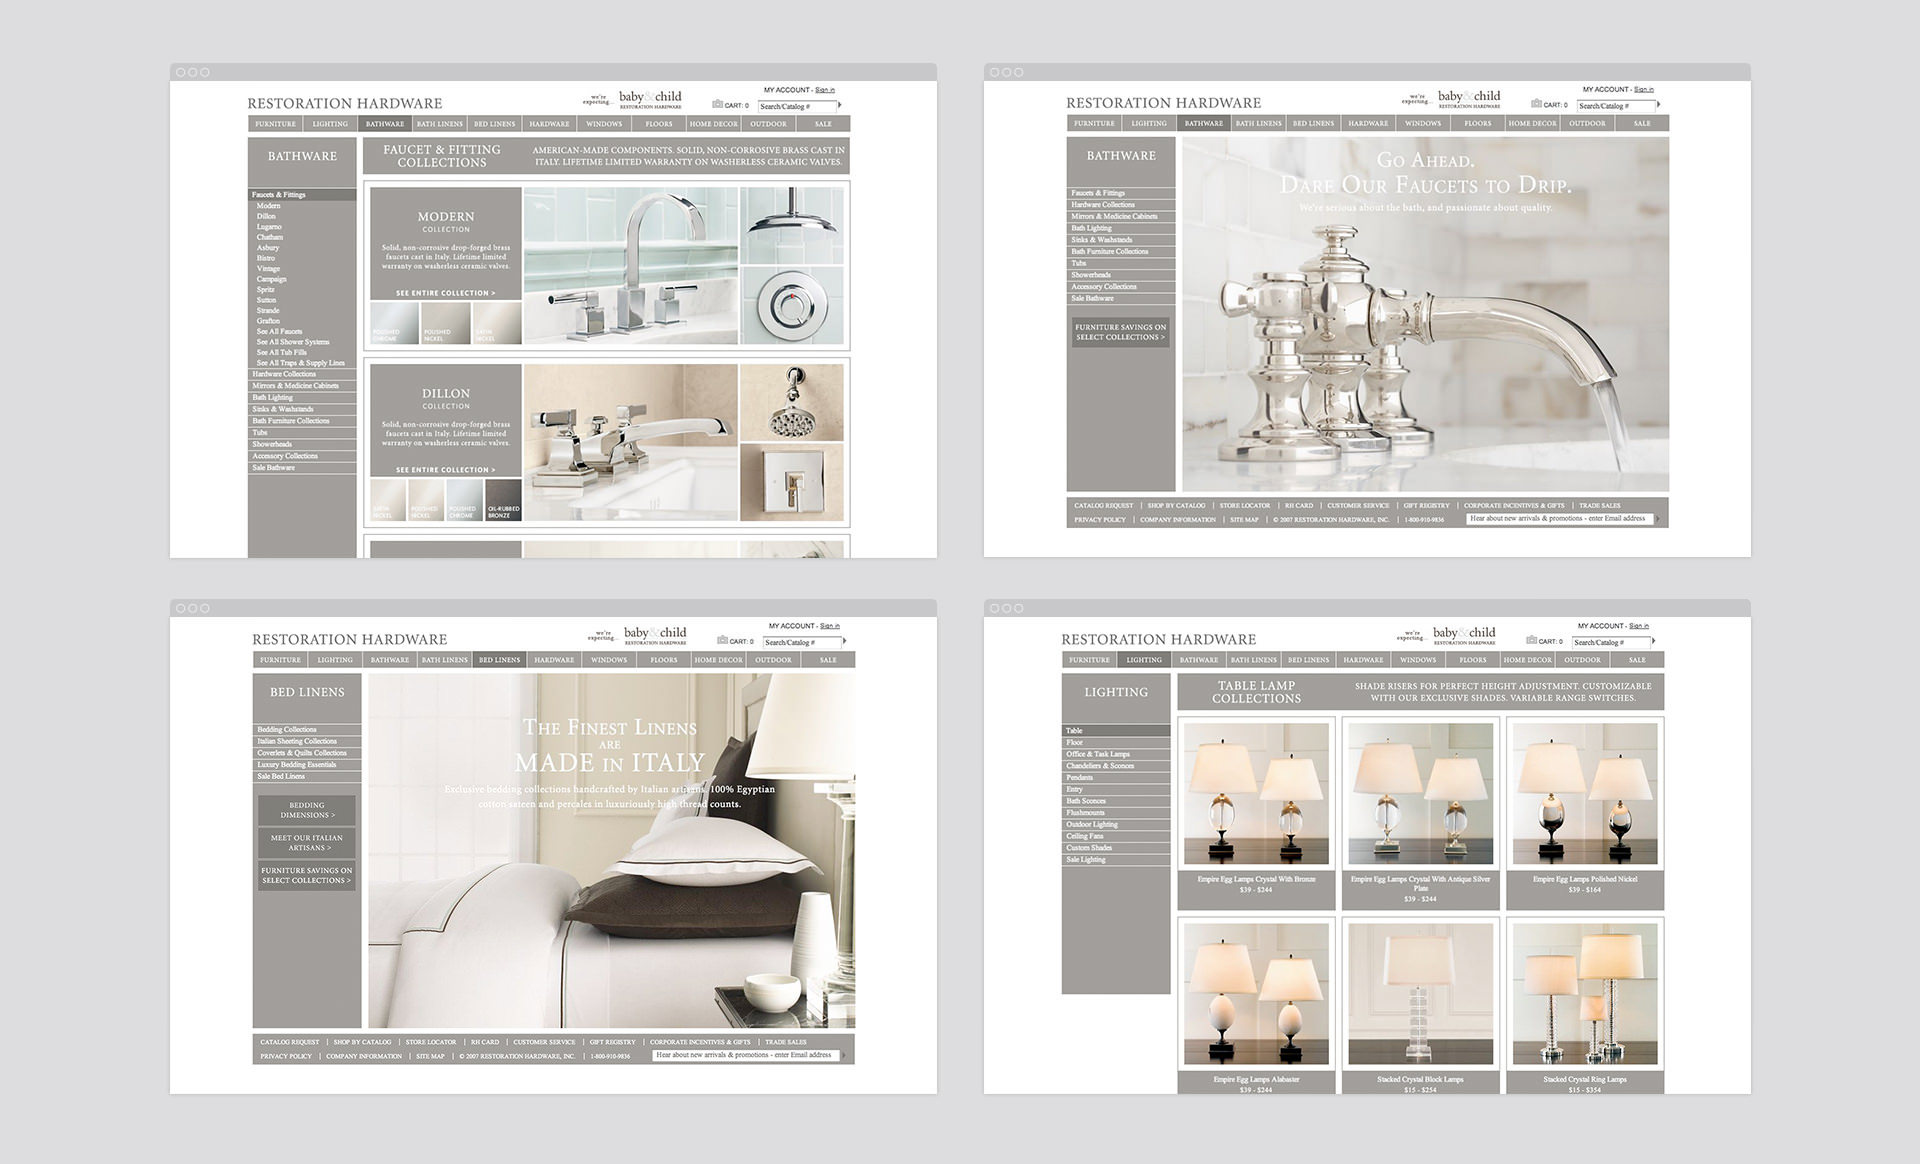 restoration_hardware_website_2